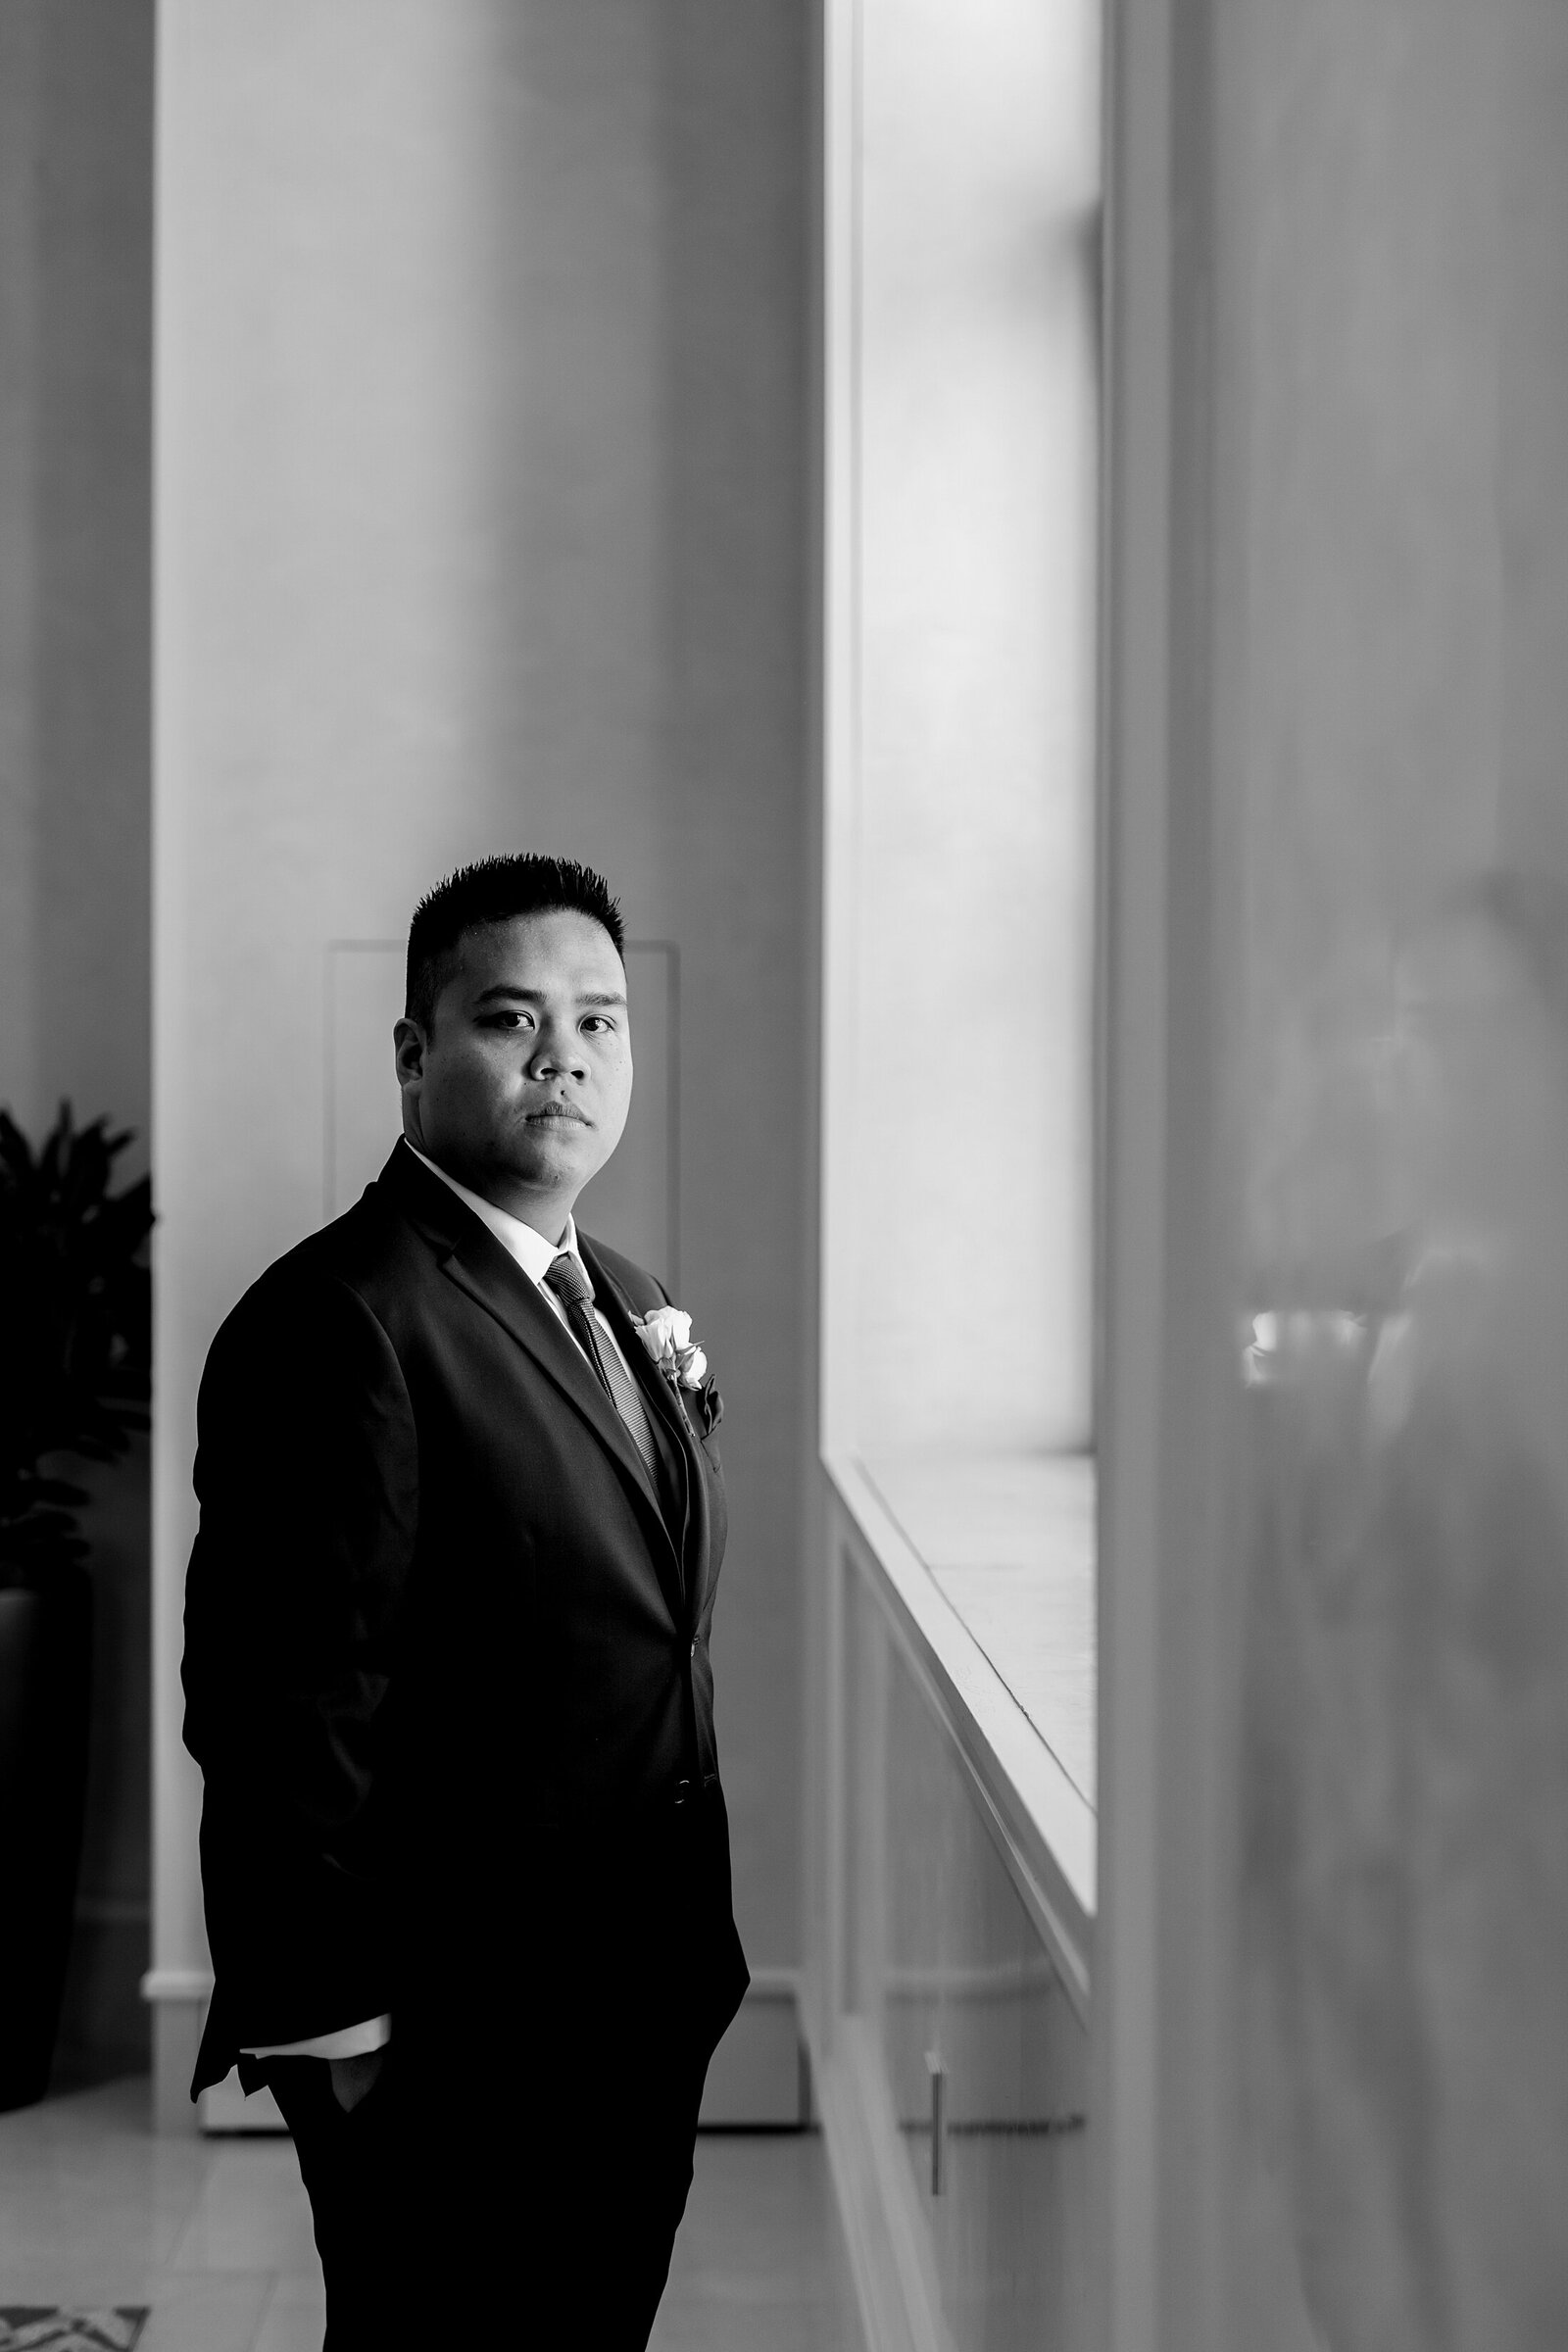 Groom in Jos A Bank Tux | Four Seasons Wedding | Chynna Pacheco Photography